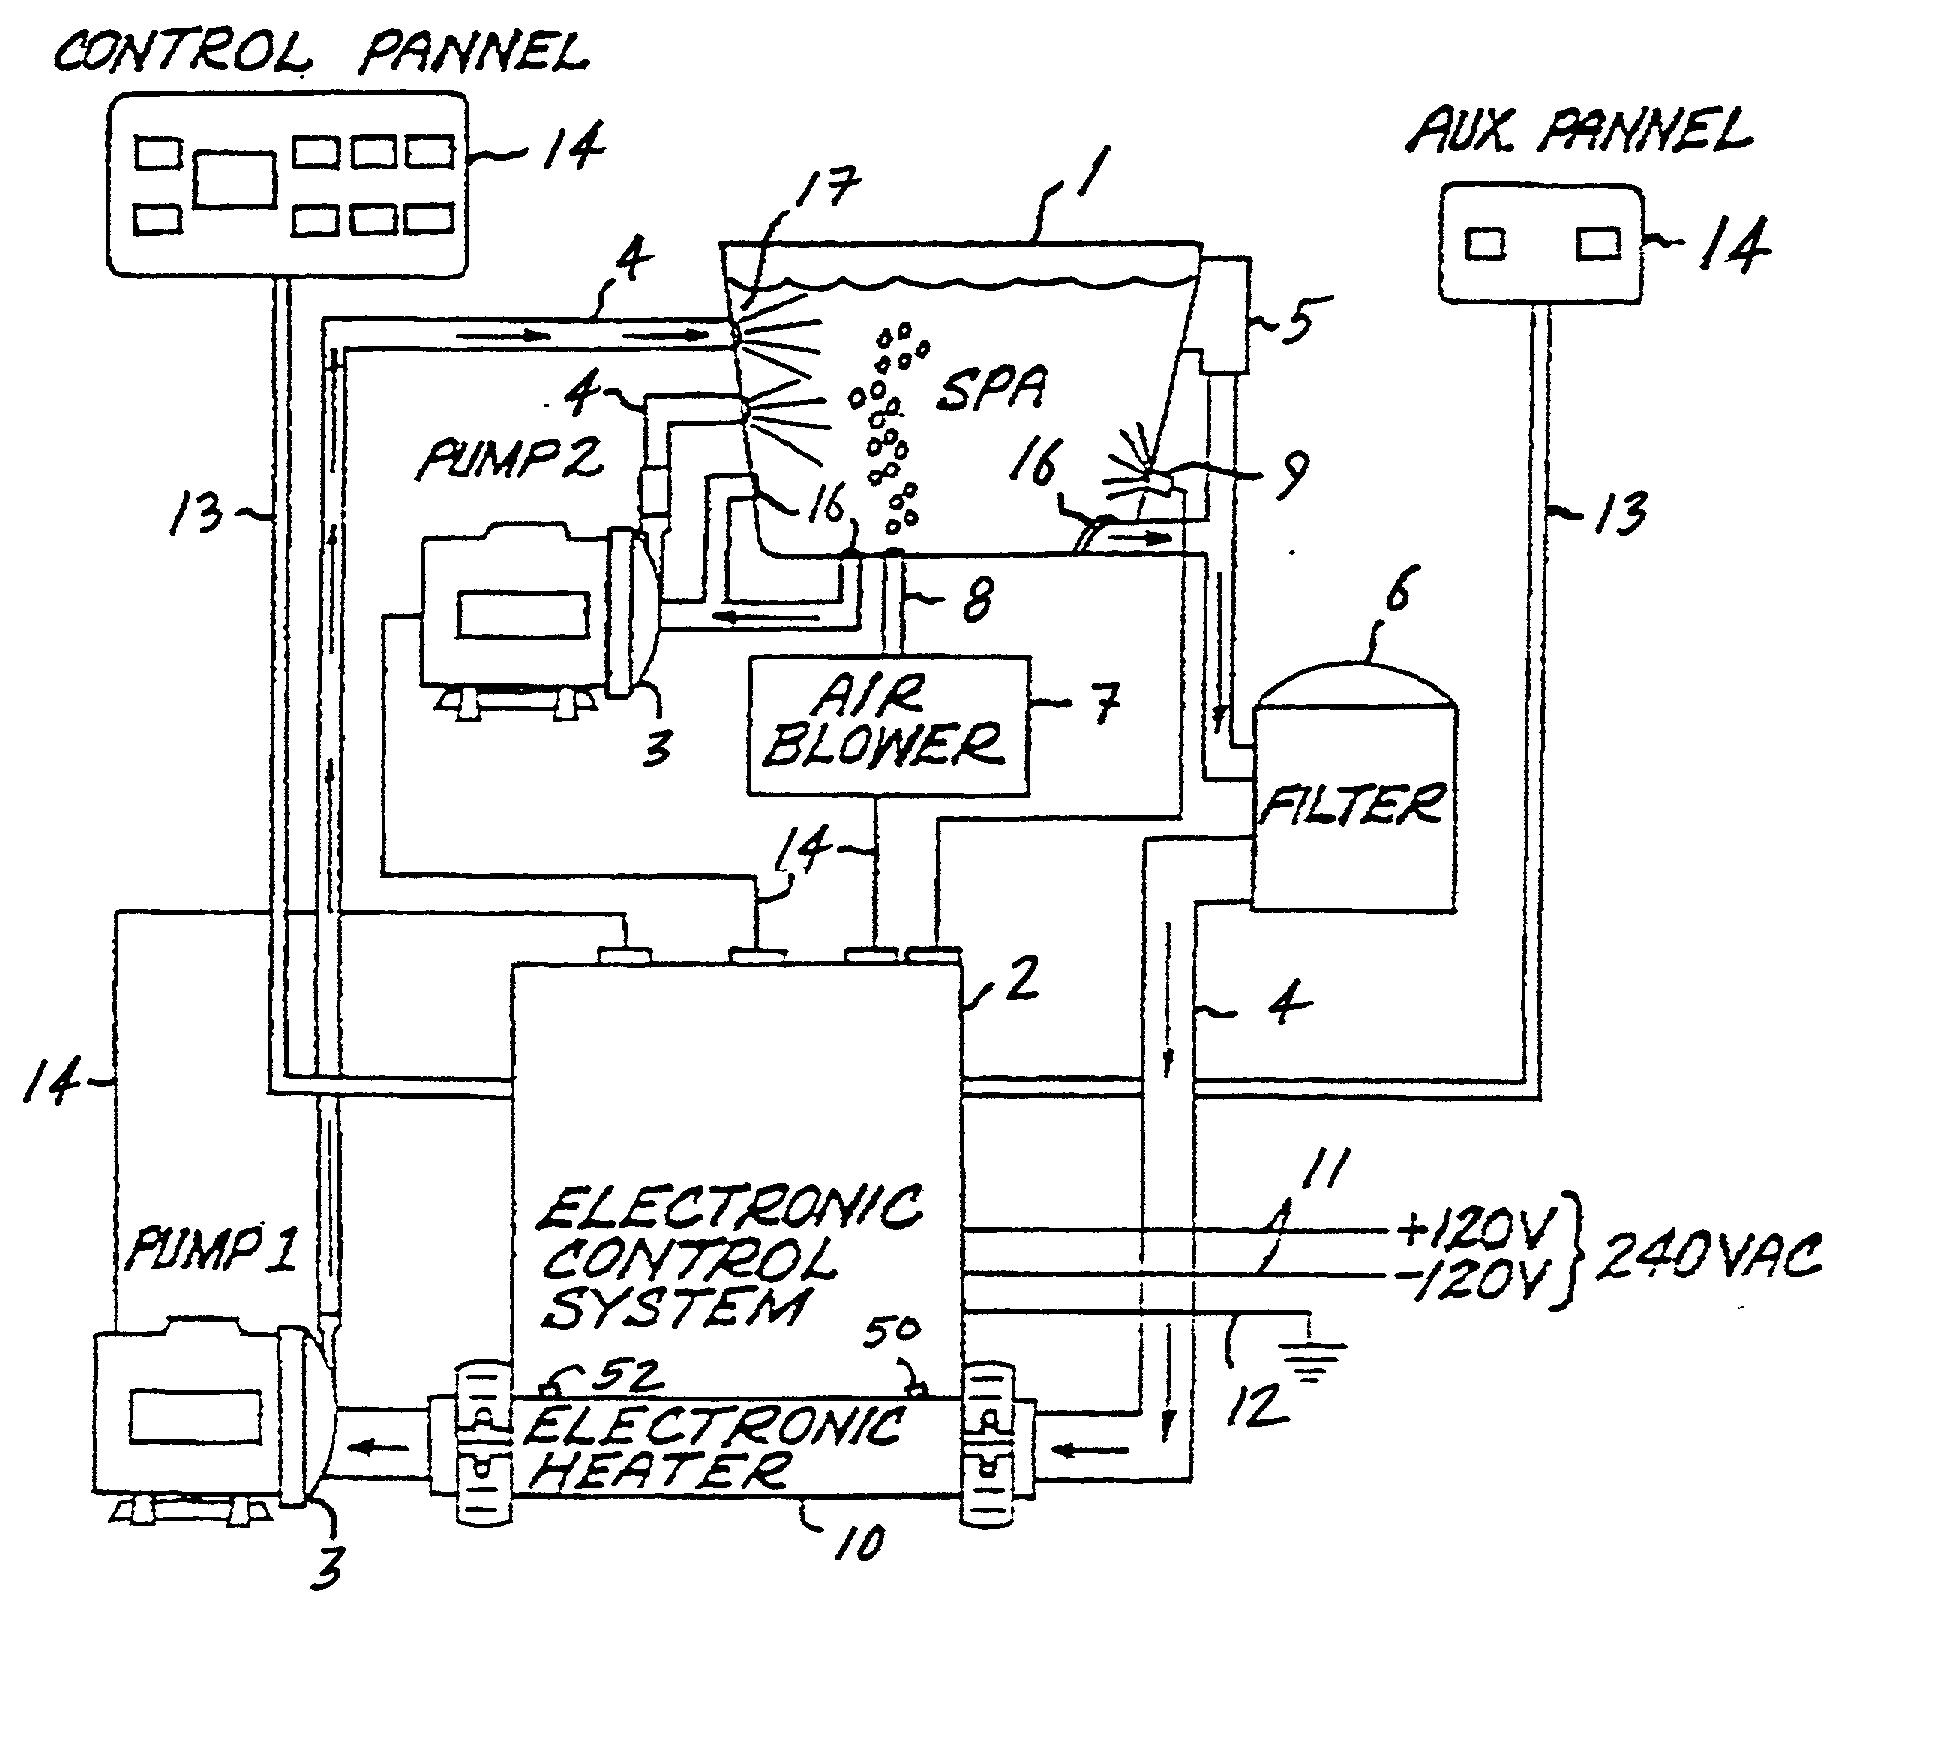 1983 Amc Spirit Wiring Diagram, 1983, Get Free Image About